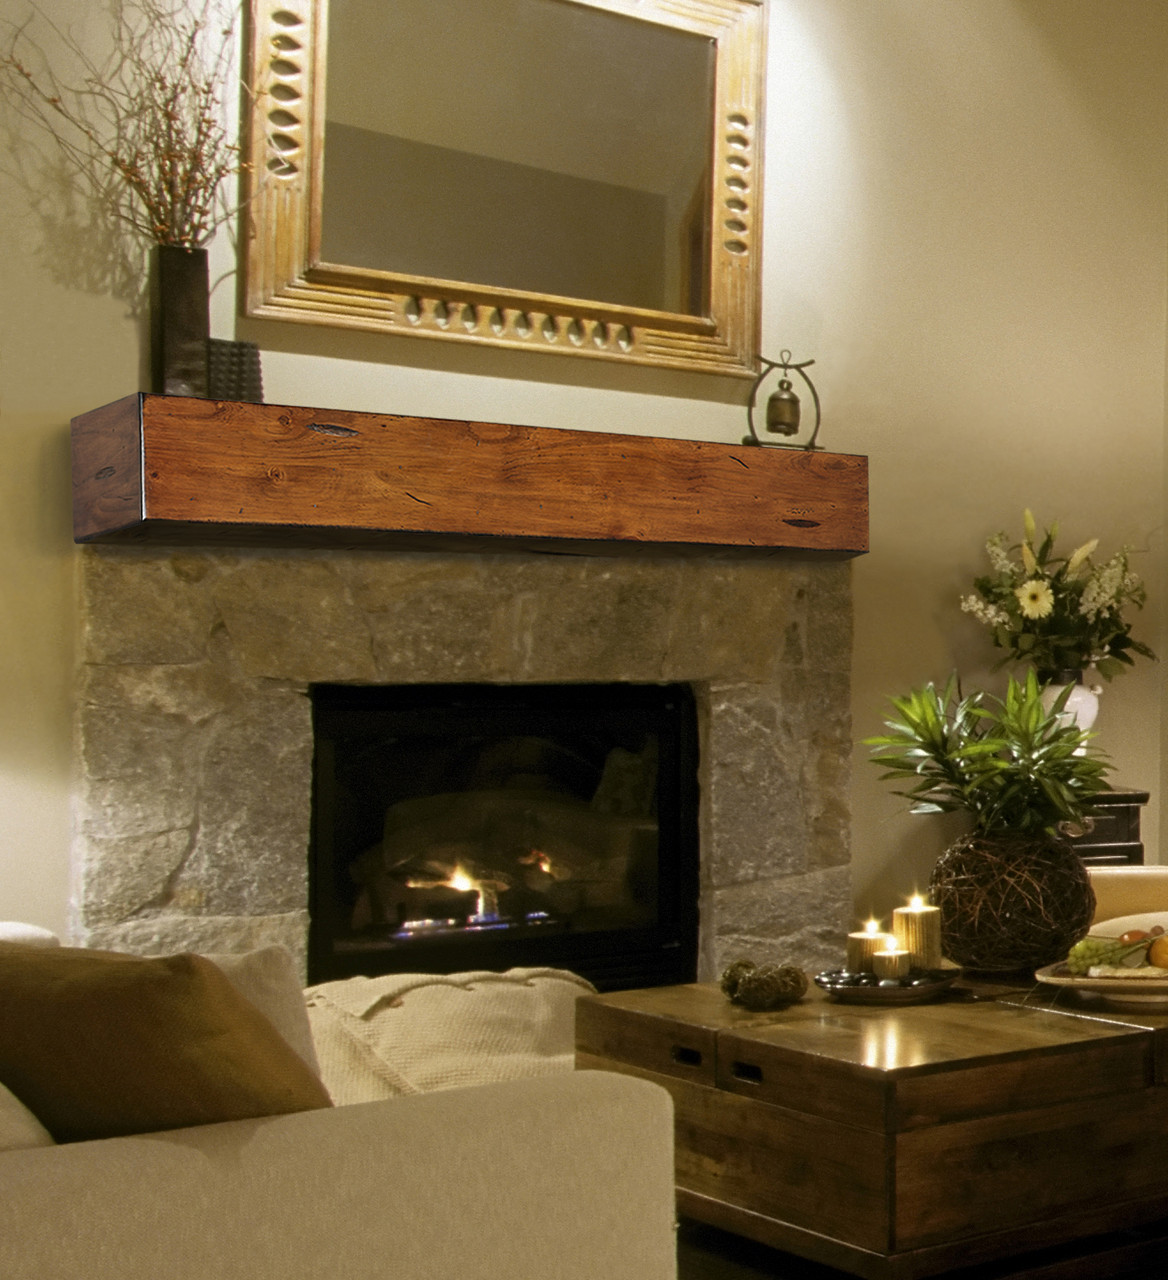 The Lexington Fireplace Mantel Shelf